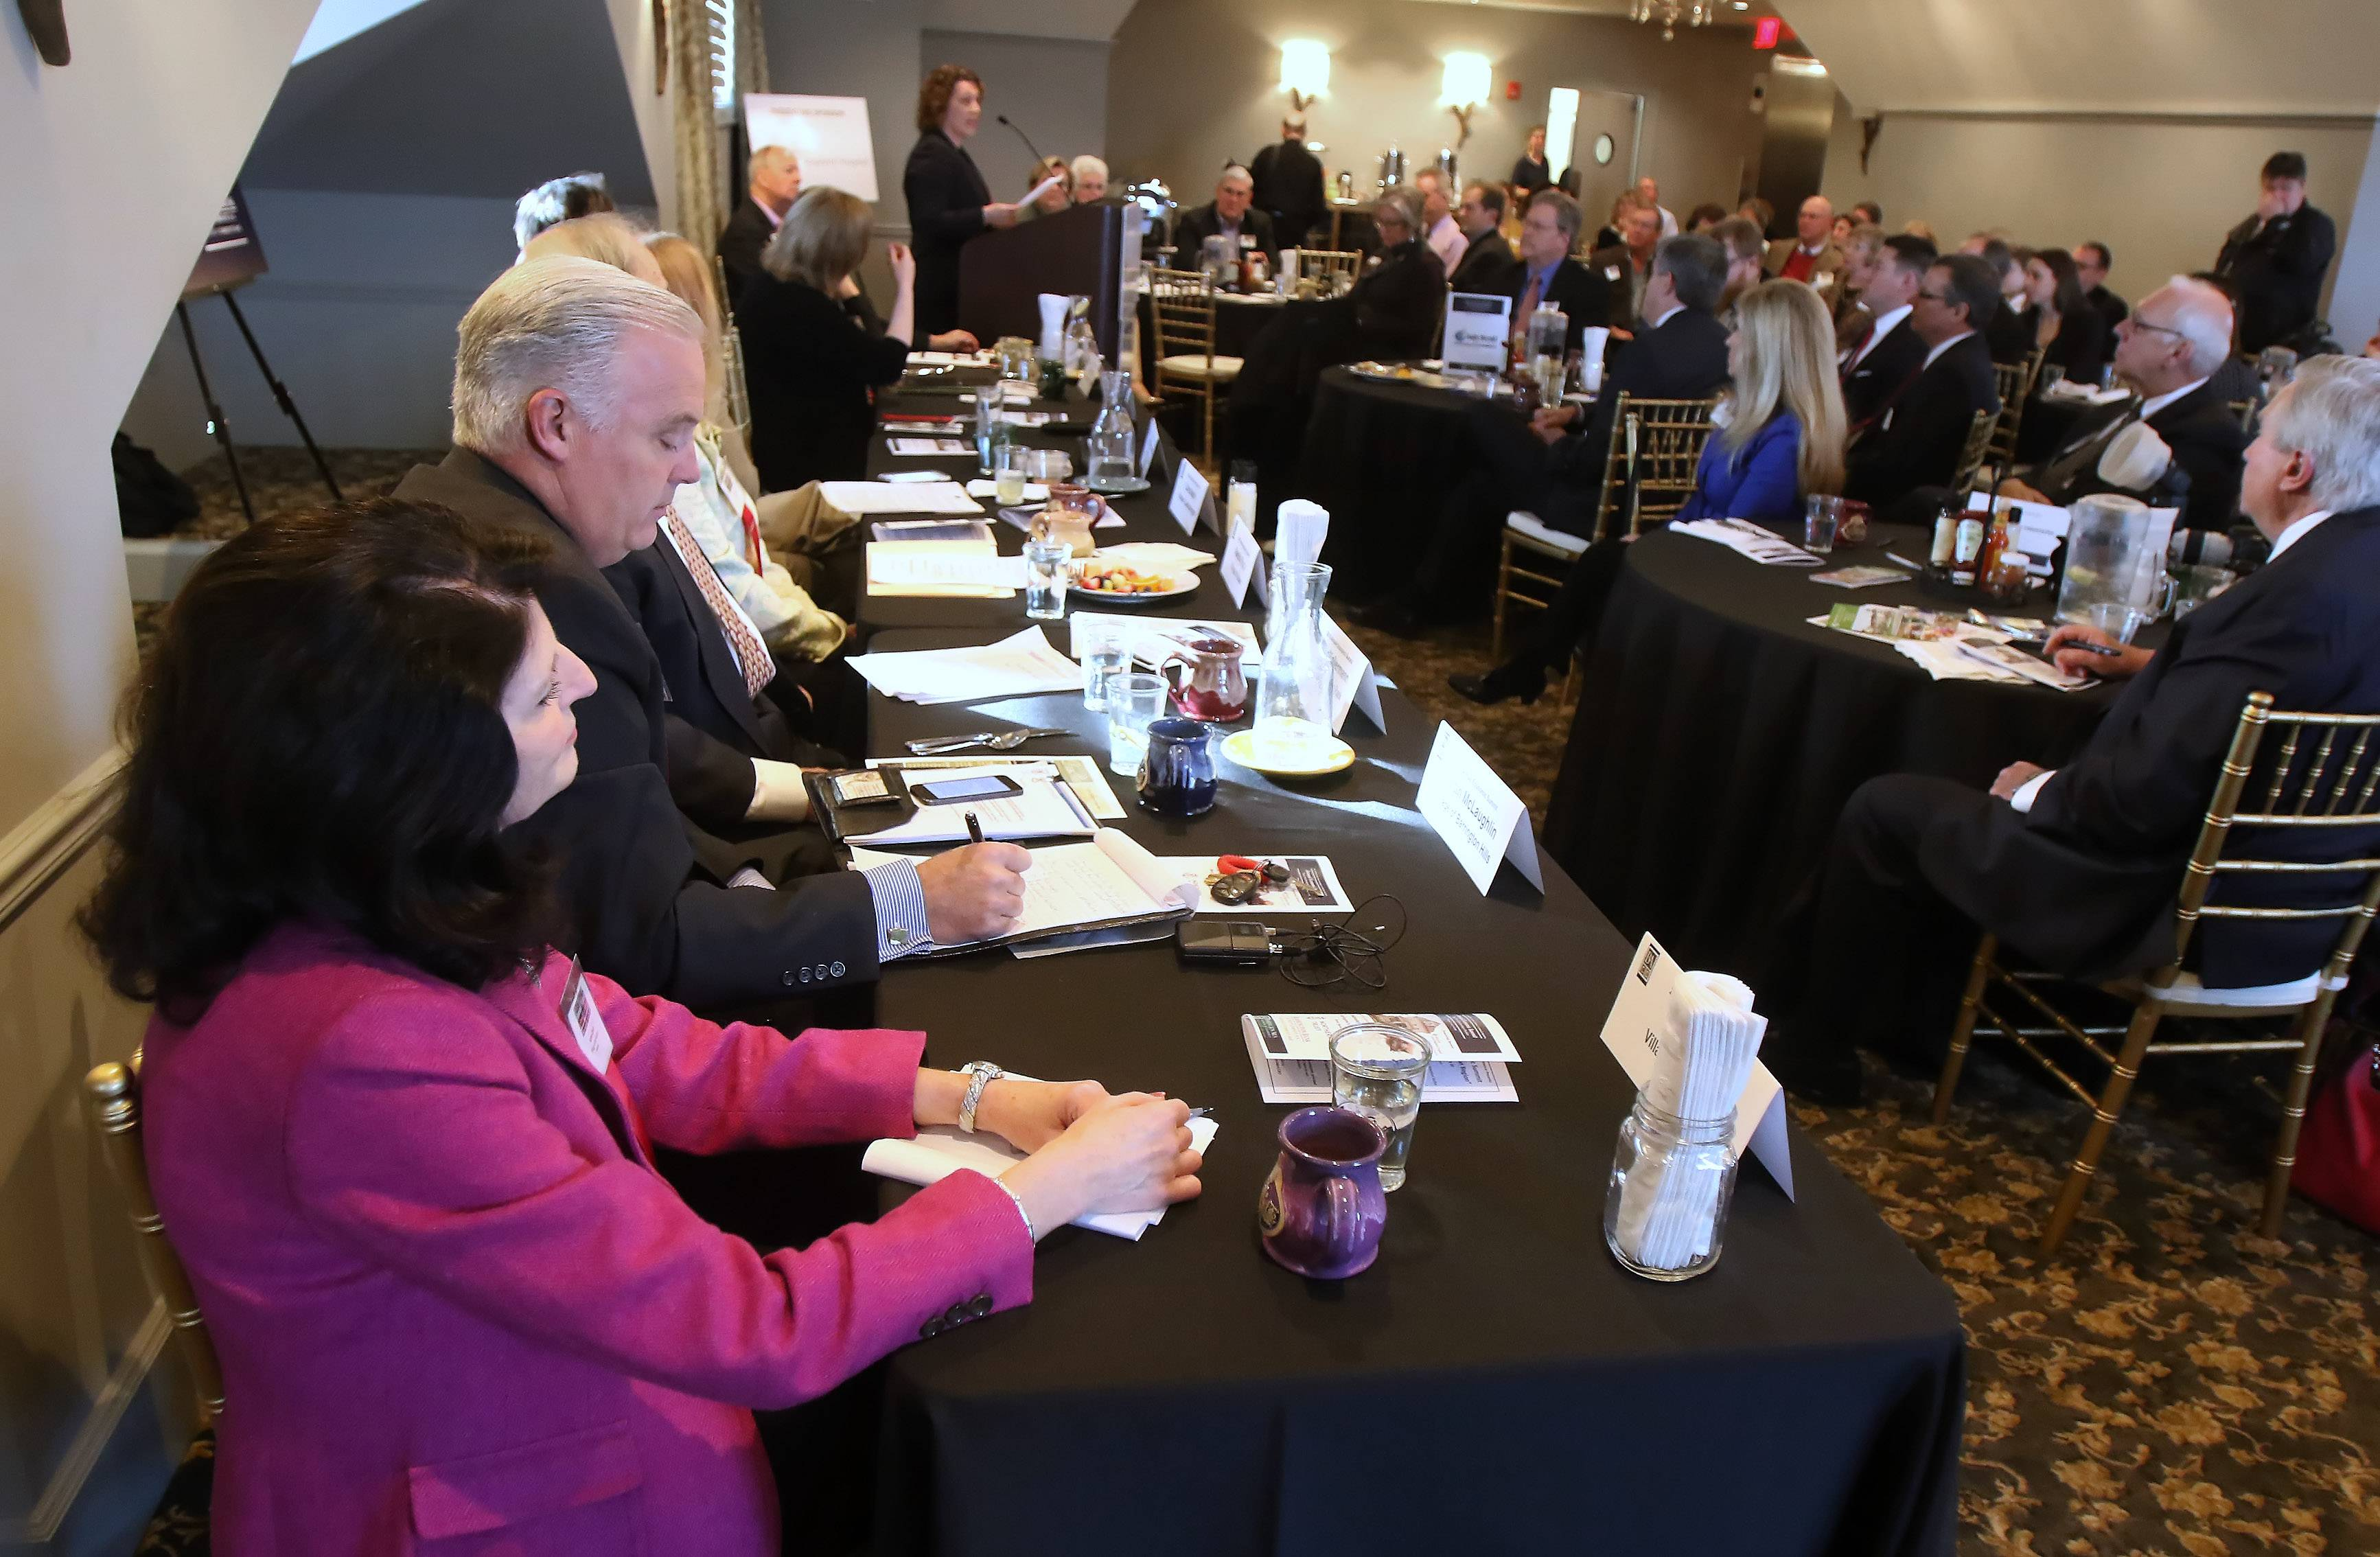 Long Grove Village President Angie Underwood talks to business leaders during the Barrington Area Chamber of Commerce Economic Summit at the White House in Barrington on Wednesday.